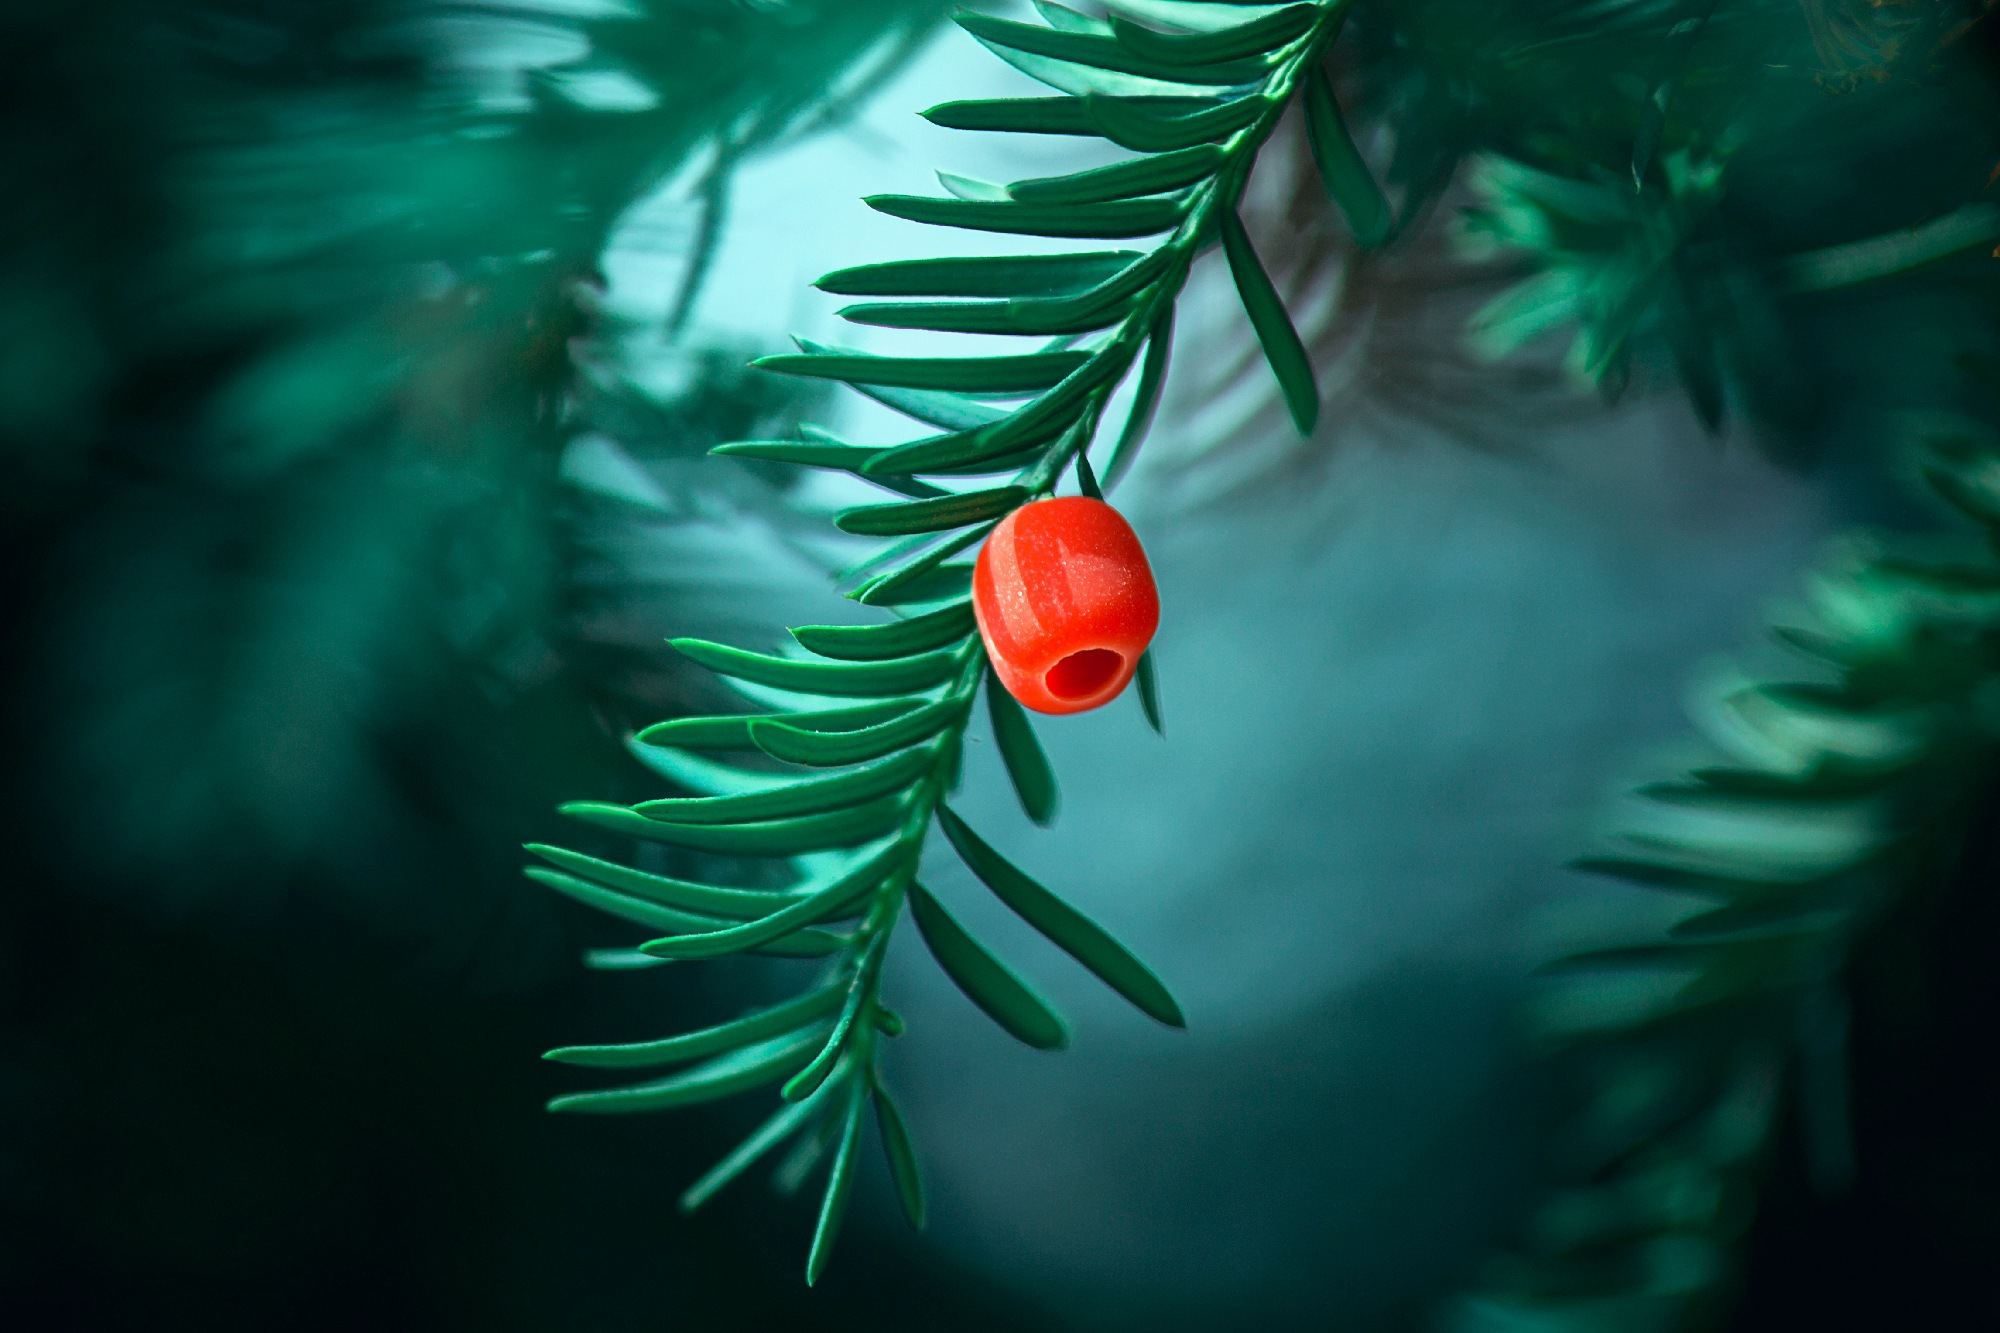 baccata taxus by jDtnt